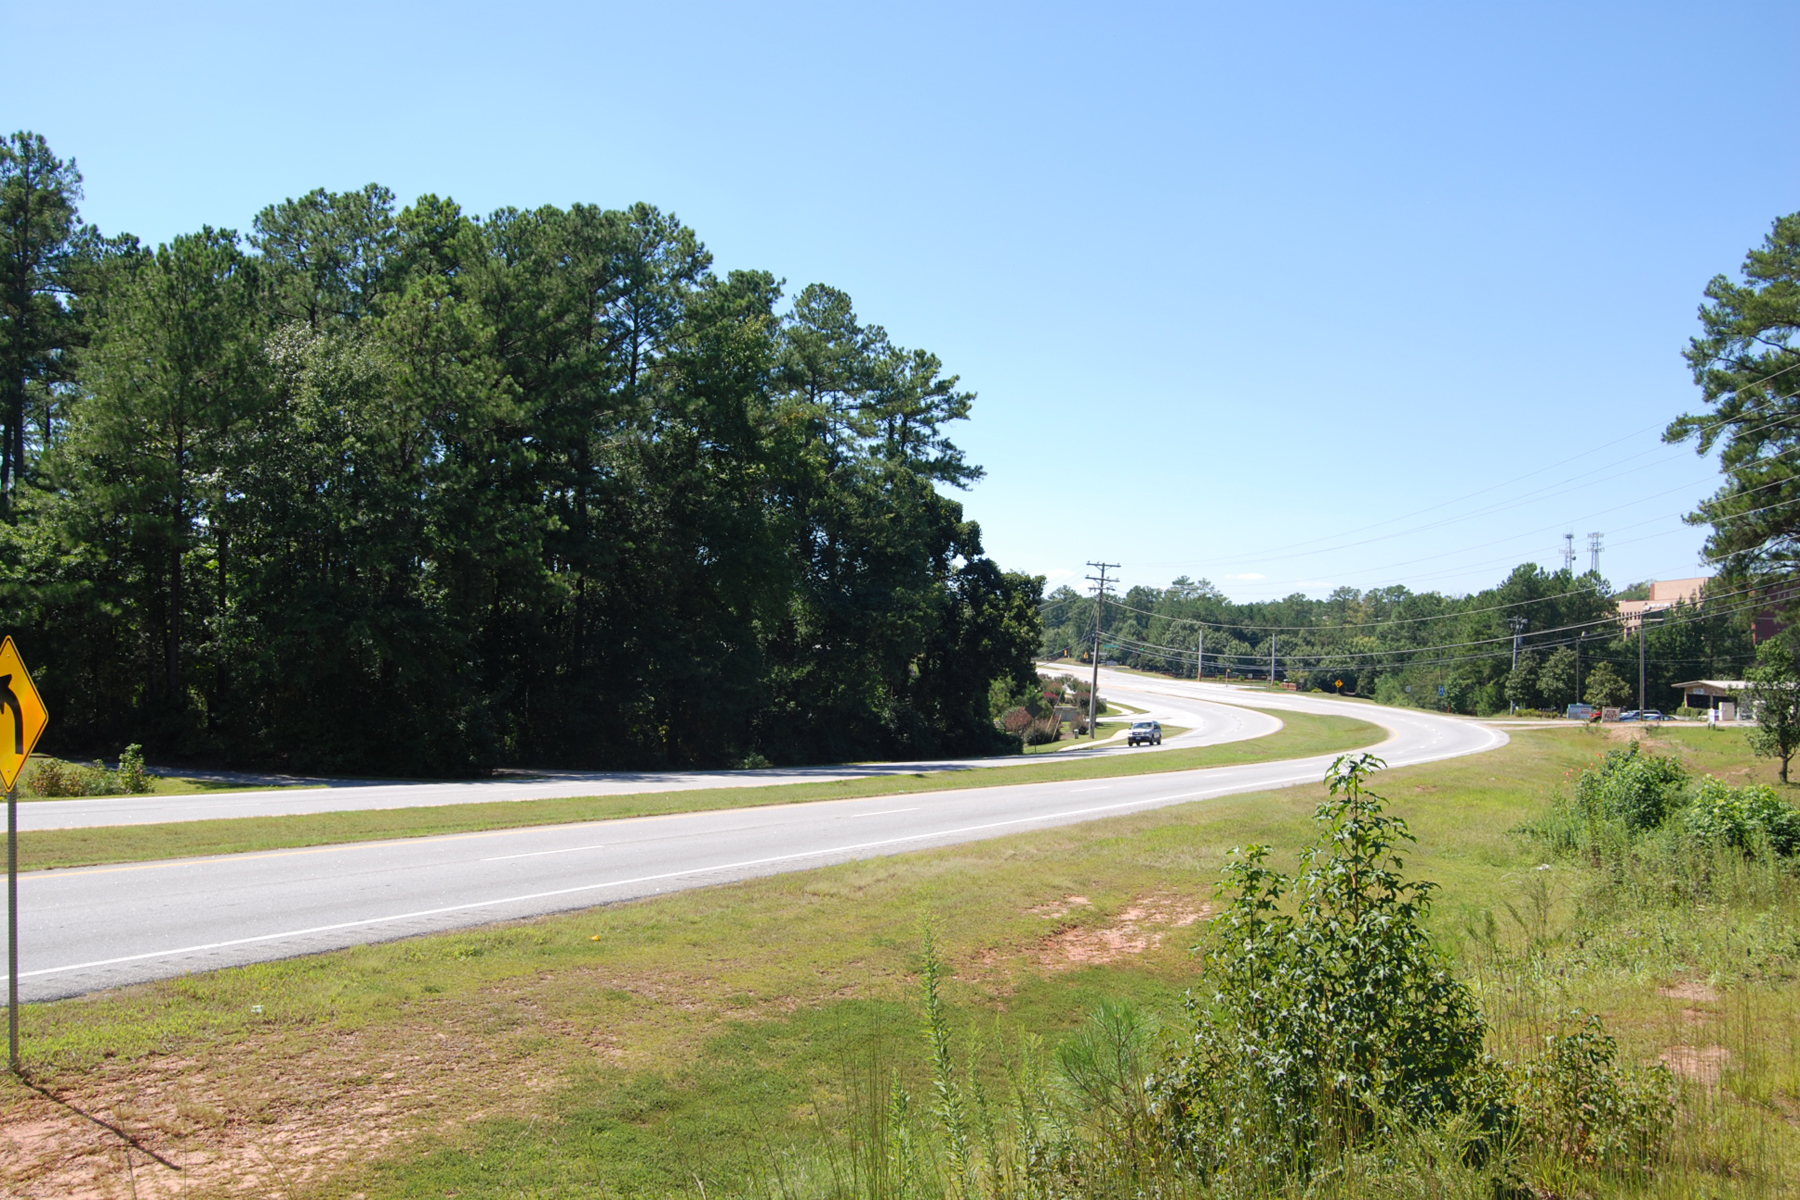 Land for Sale at Prime Location - 12+/- Acres Across From Piedmont Fayette Hospital 1218 Highway 54 W Fayetteville, Georgia 30215 United States